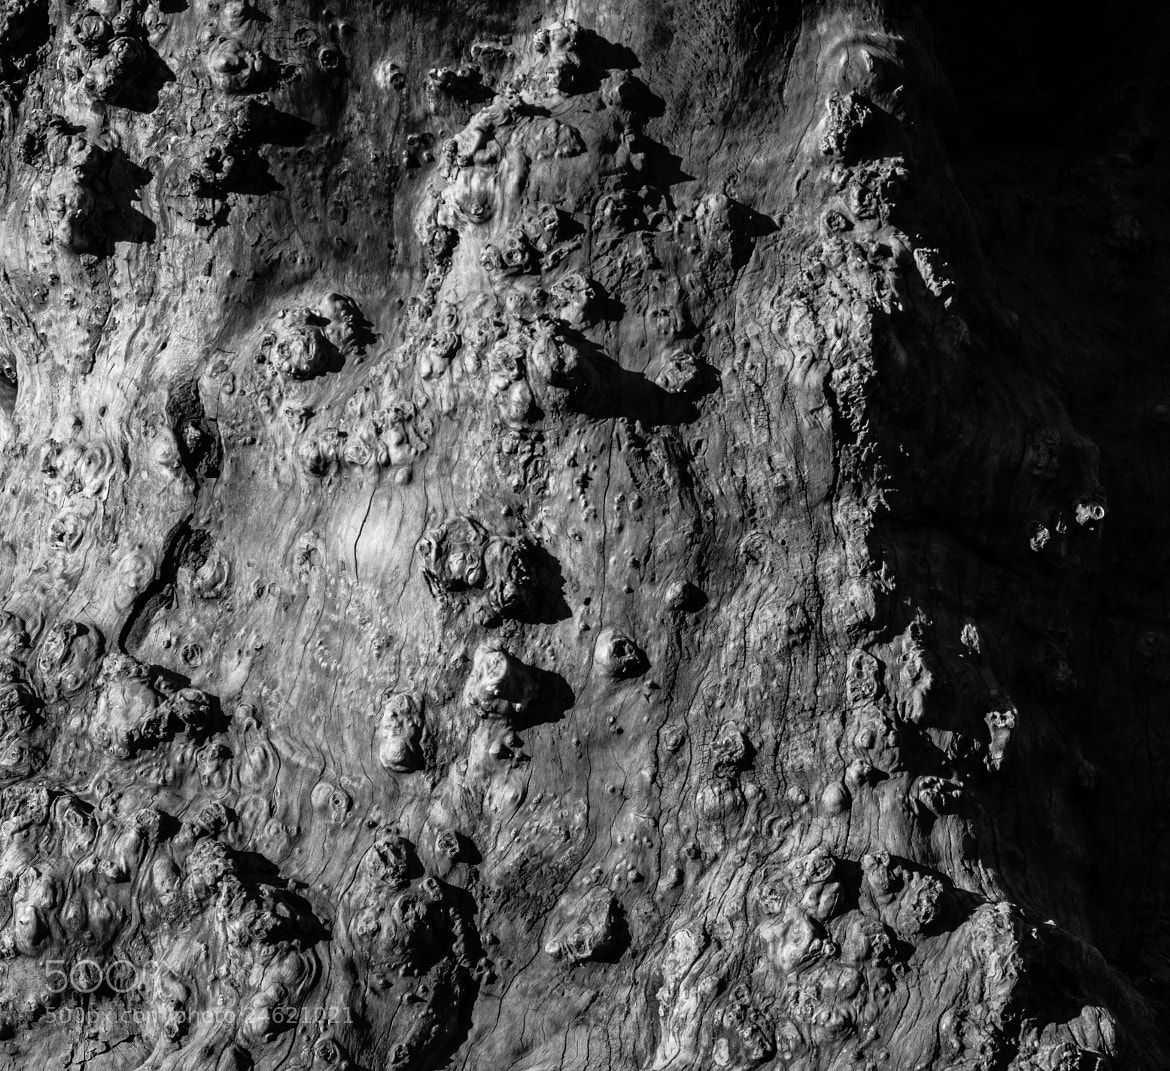 Photograph Moonscape close-up by Christoffer Gebel on 500px